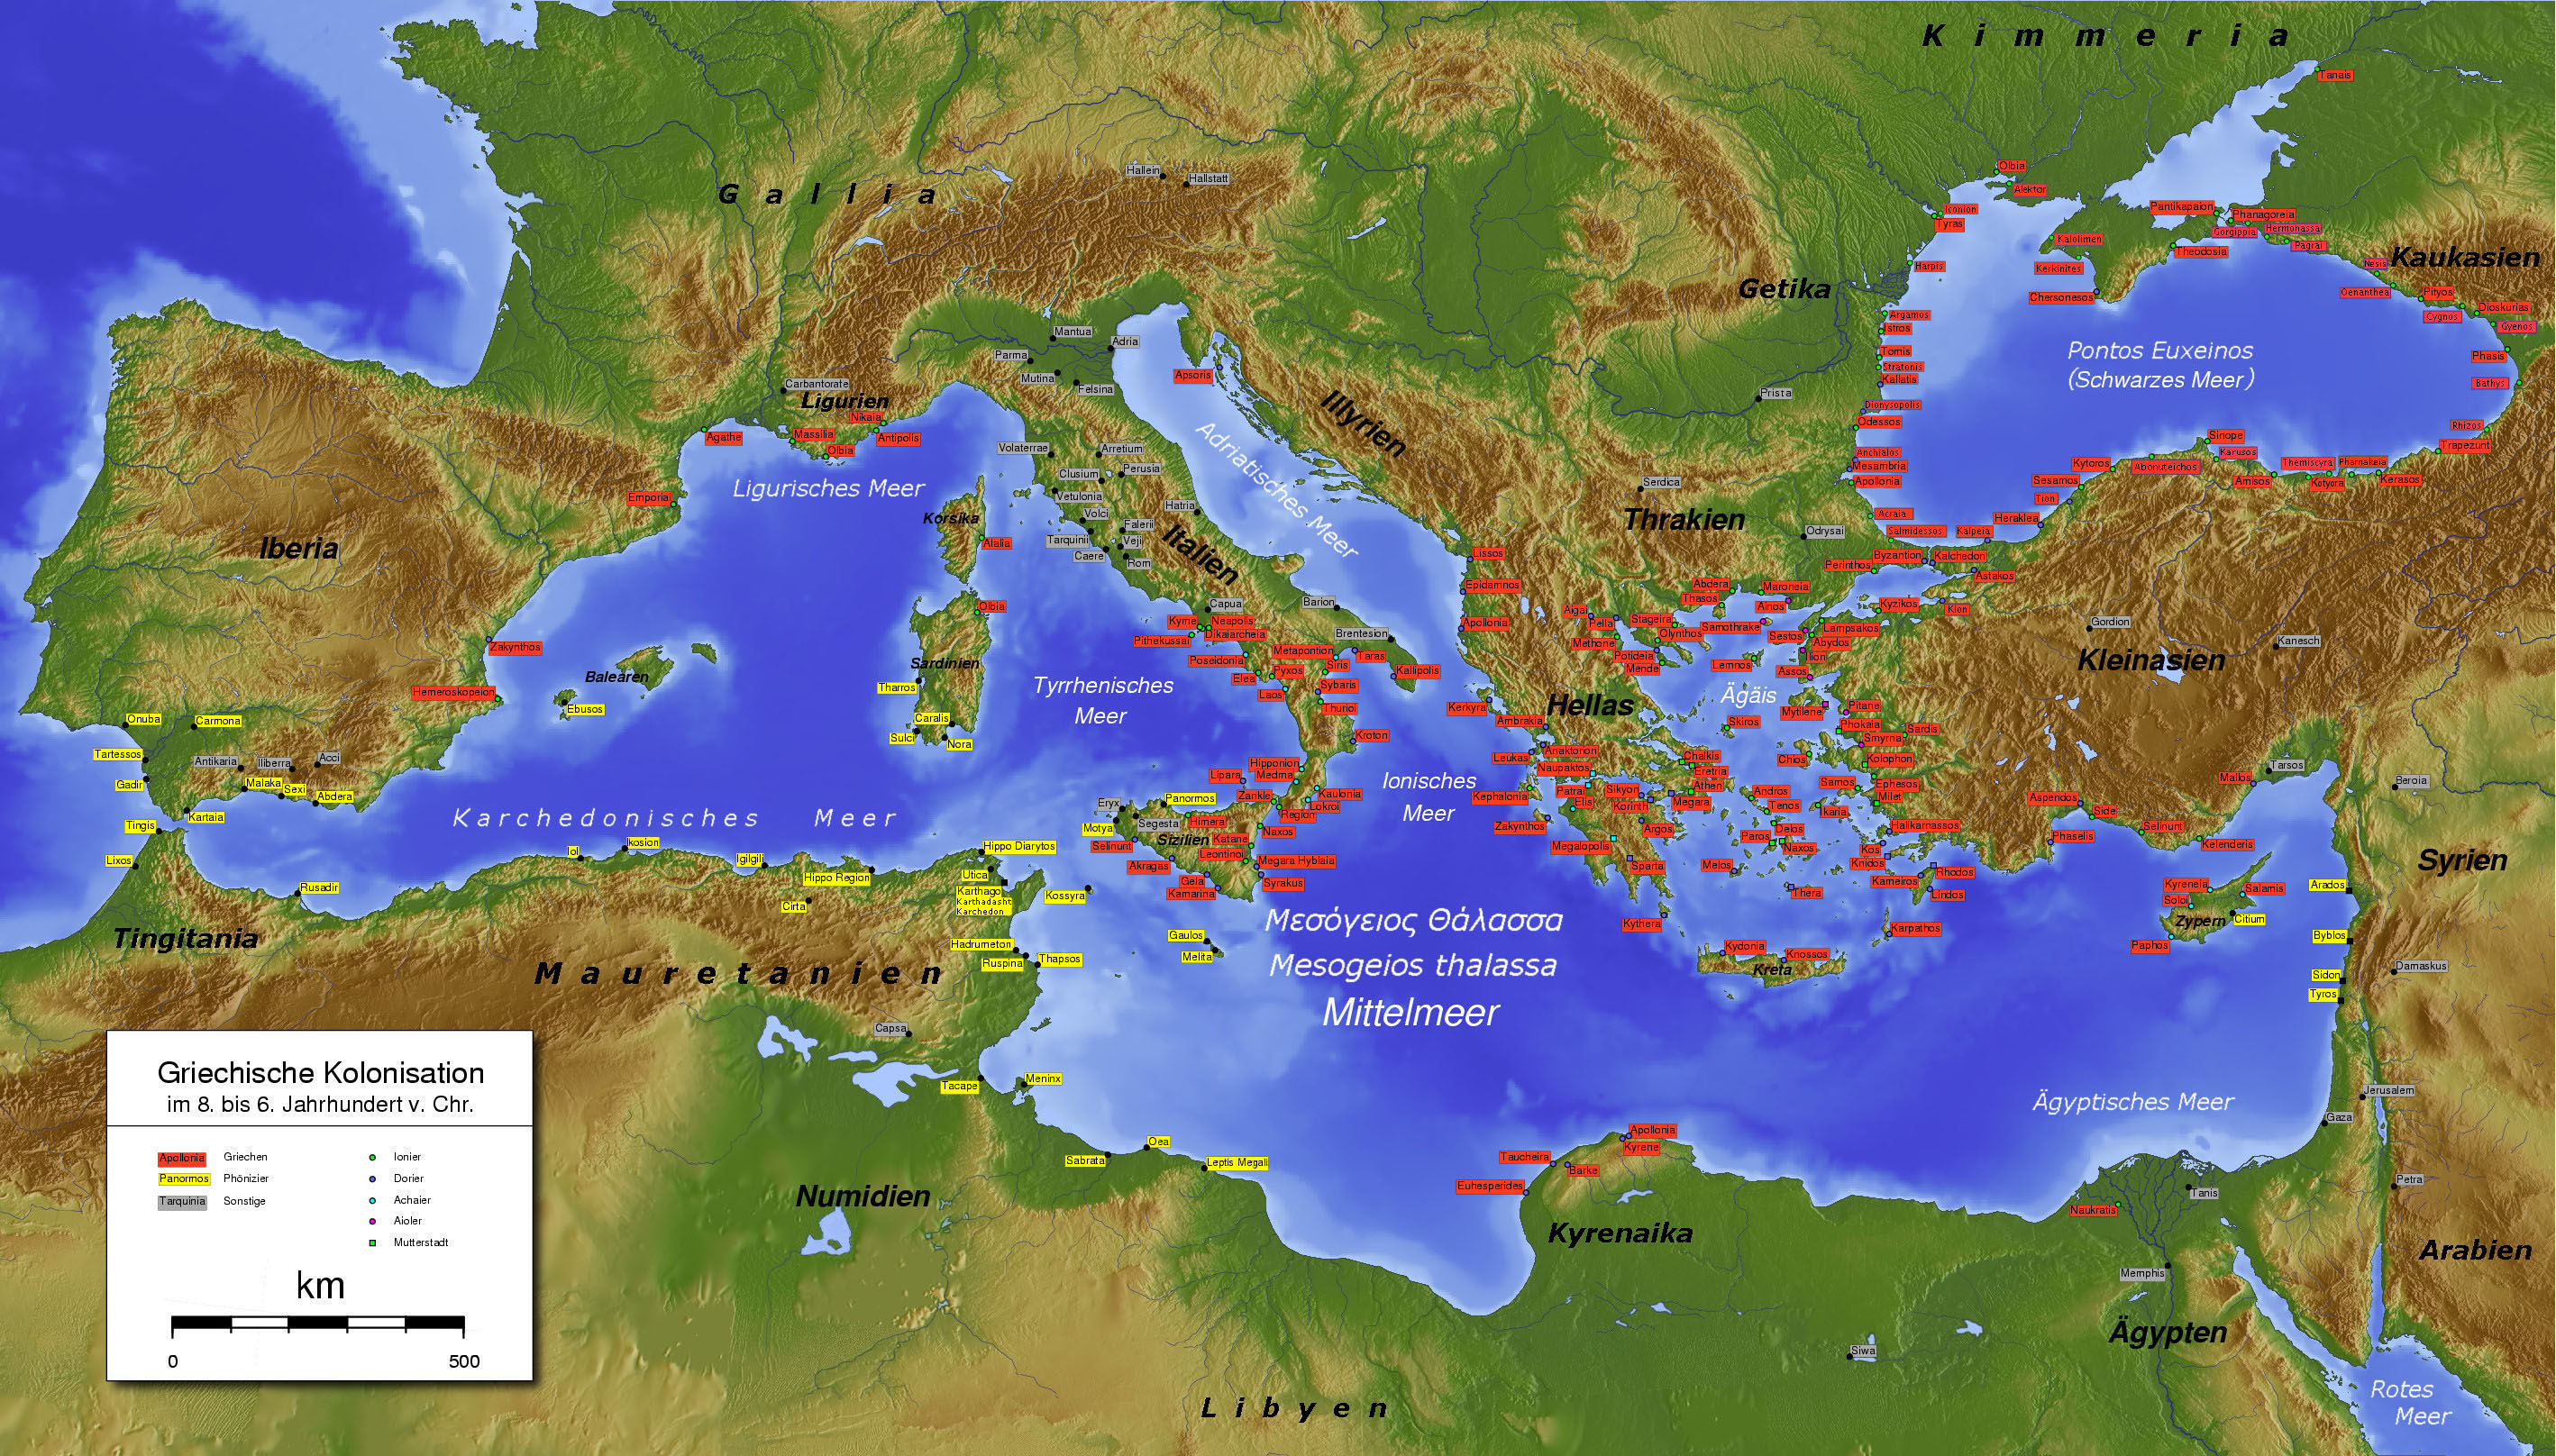 The Mediterranean in ca. the 6th century BC. Phoenician cities are labelled in yellow, Greek cities in red, and other cities in grey.